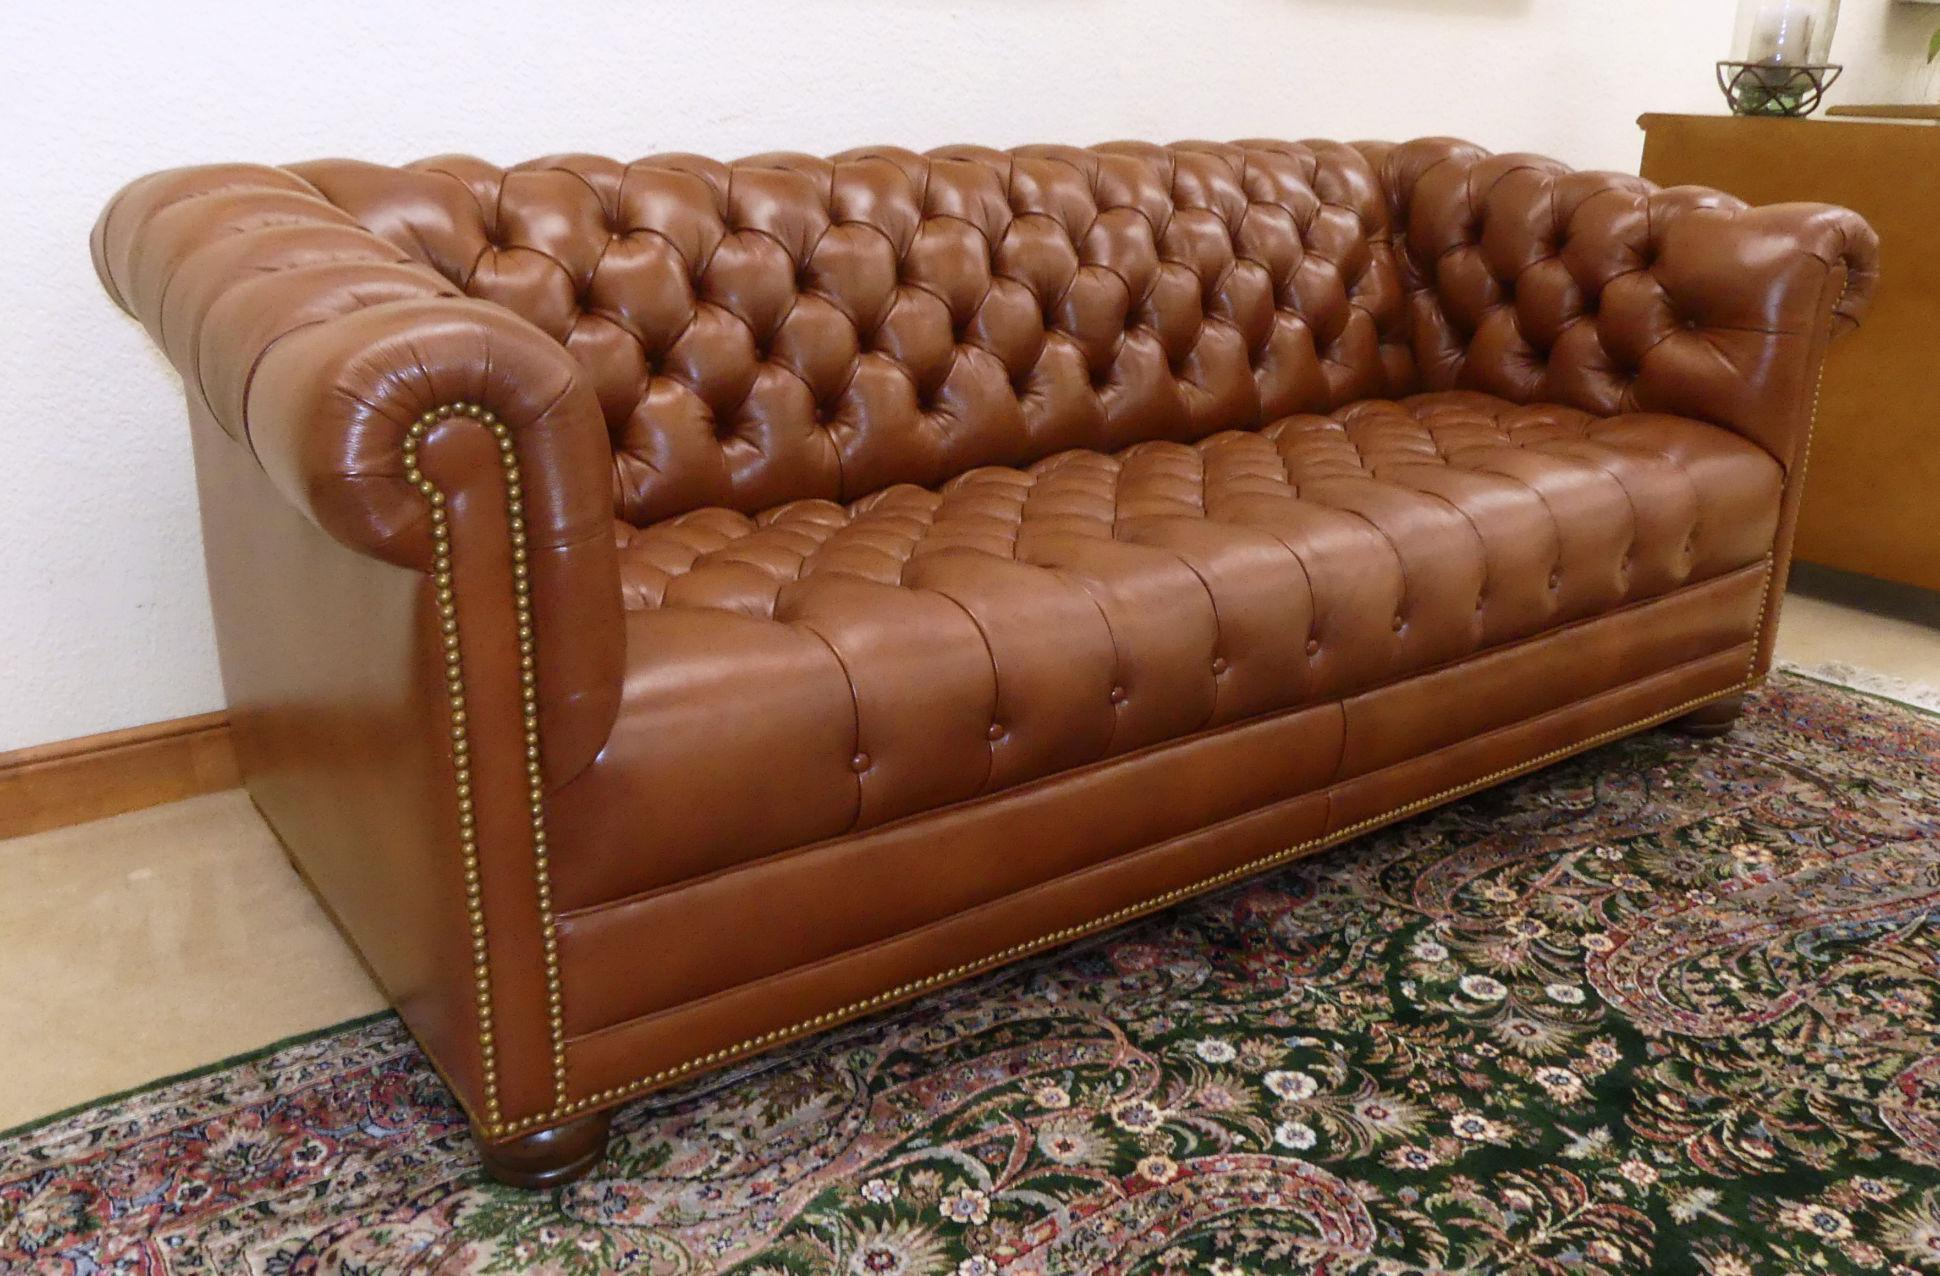 A Beautifully Kept And Minimally Used Brown Leather Chesterfield Sofa By  Hancock And Moore. Covered